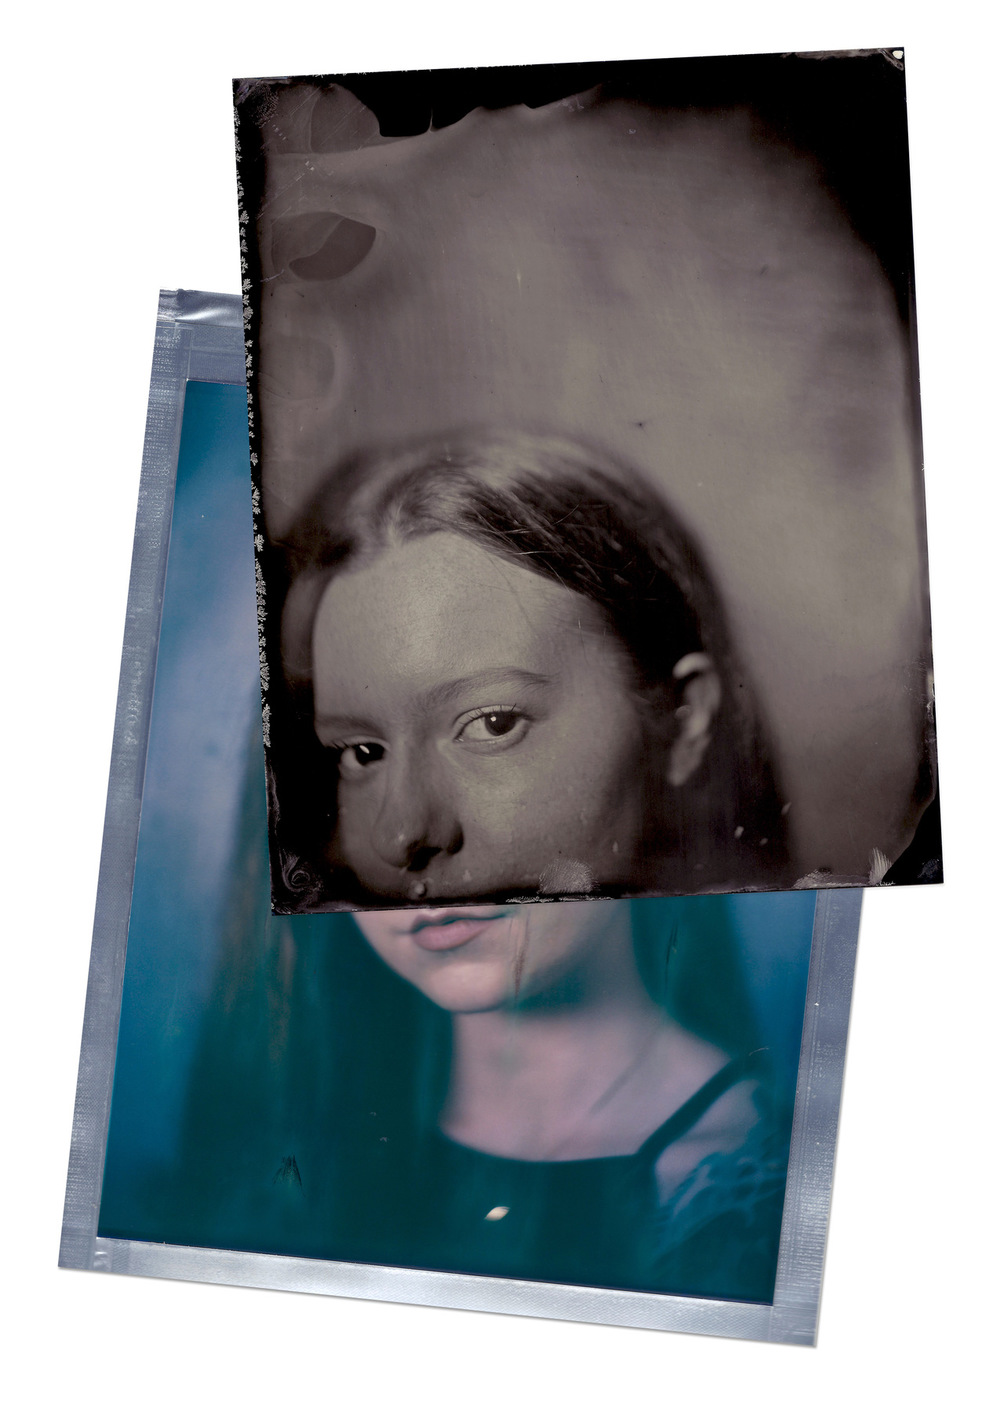 Brian Garbrecht - Aubrey 8x10 wet plate collodion on aluminum, on top of an 8x10 instant photograph. 2017